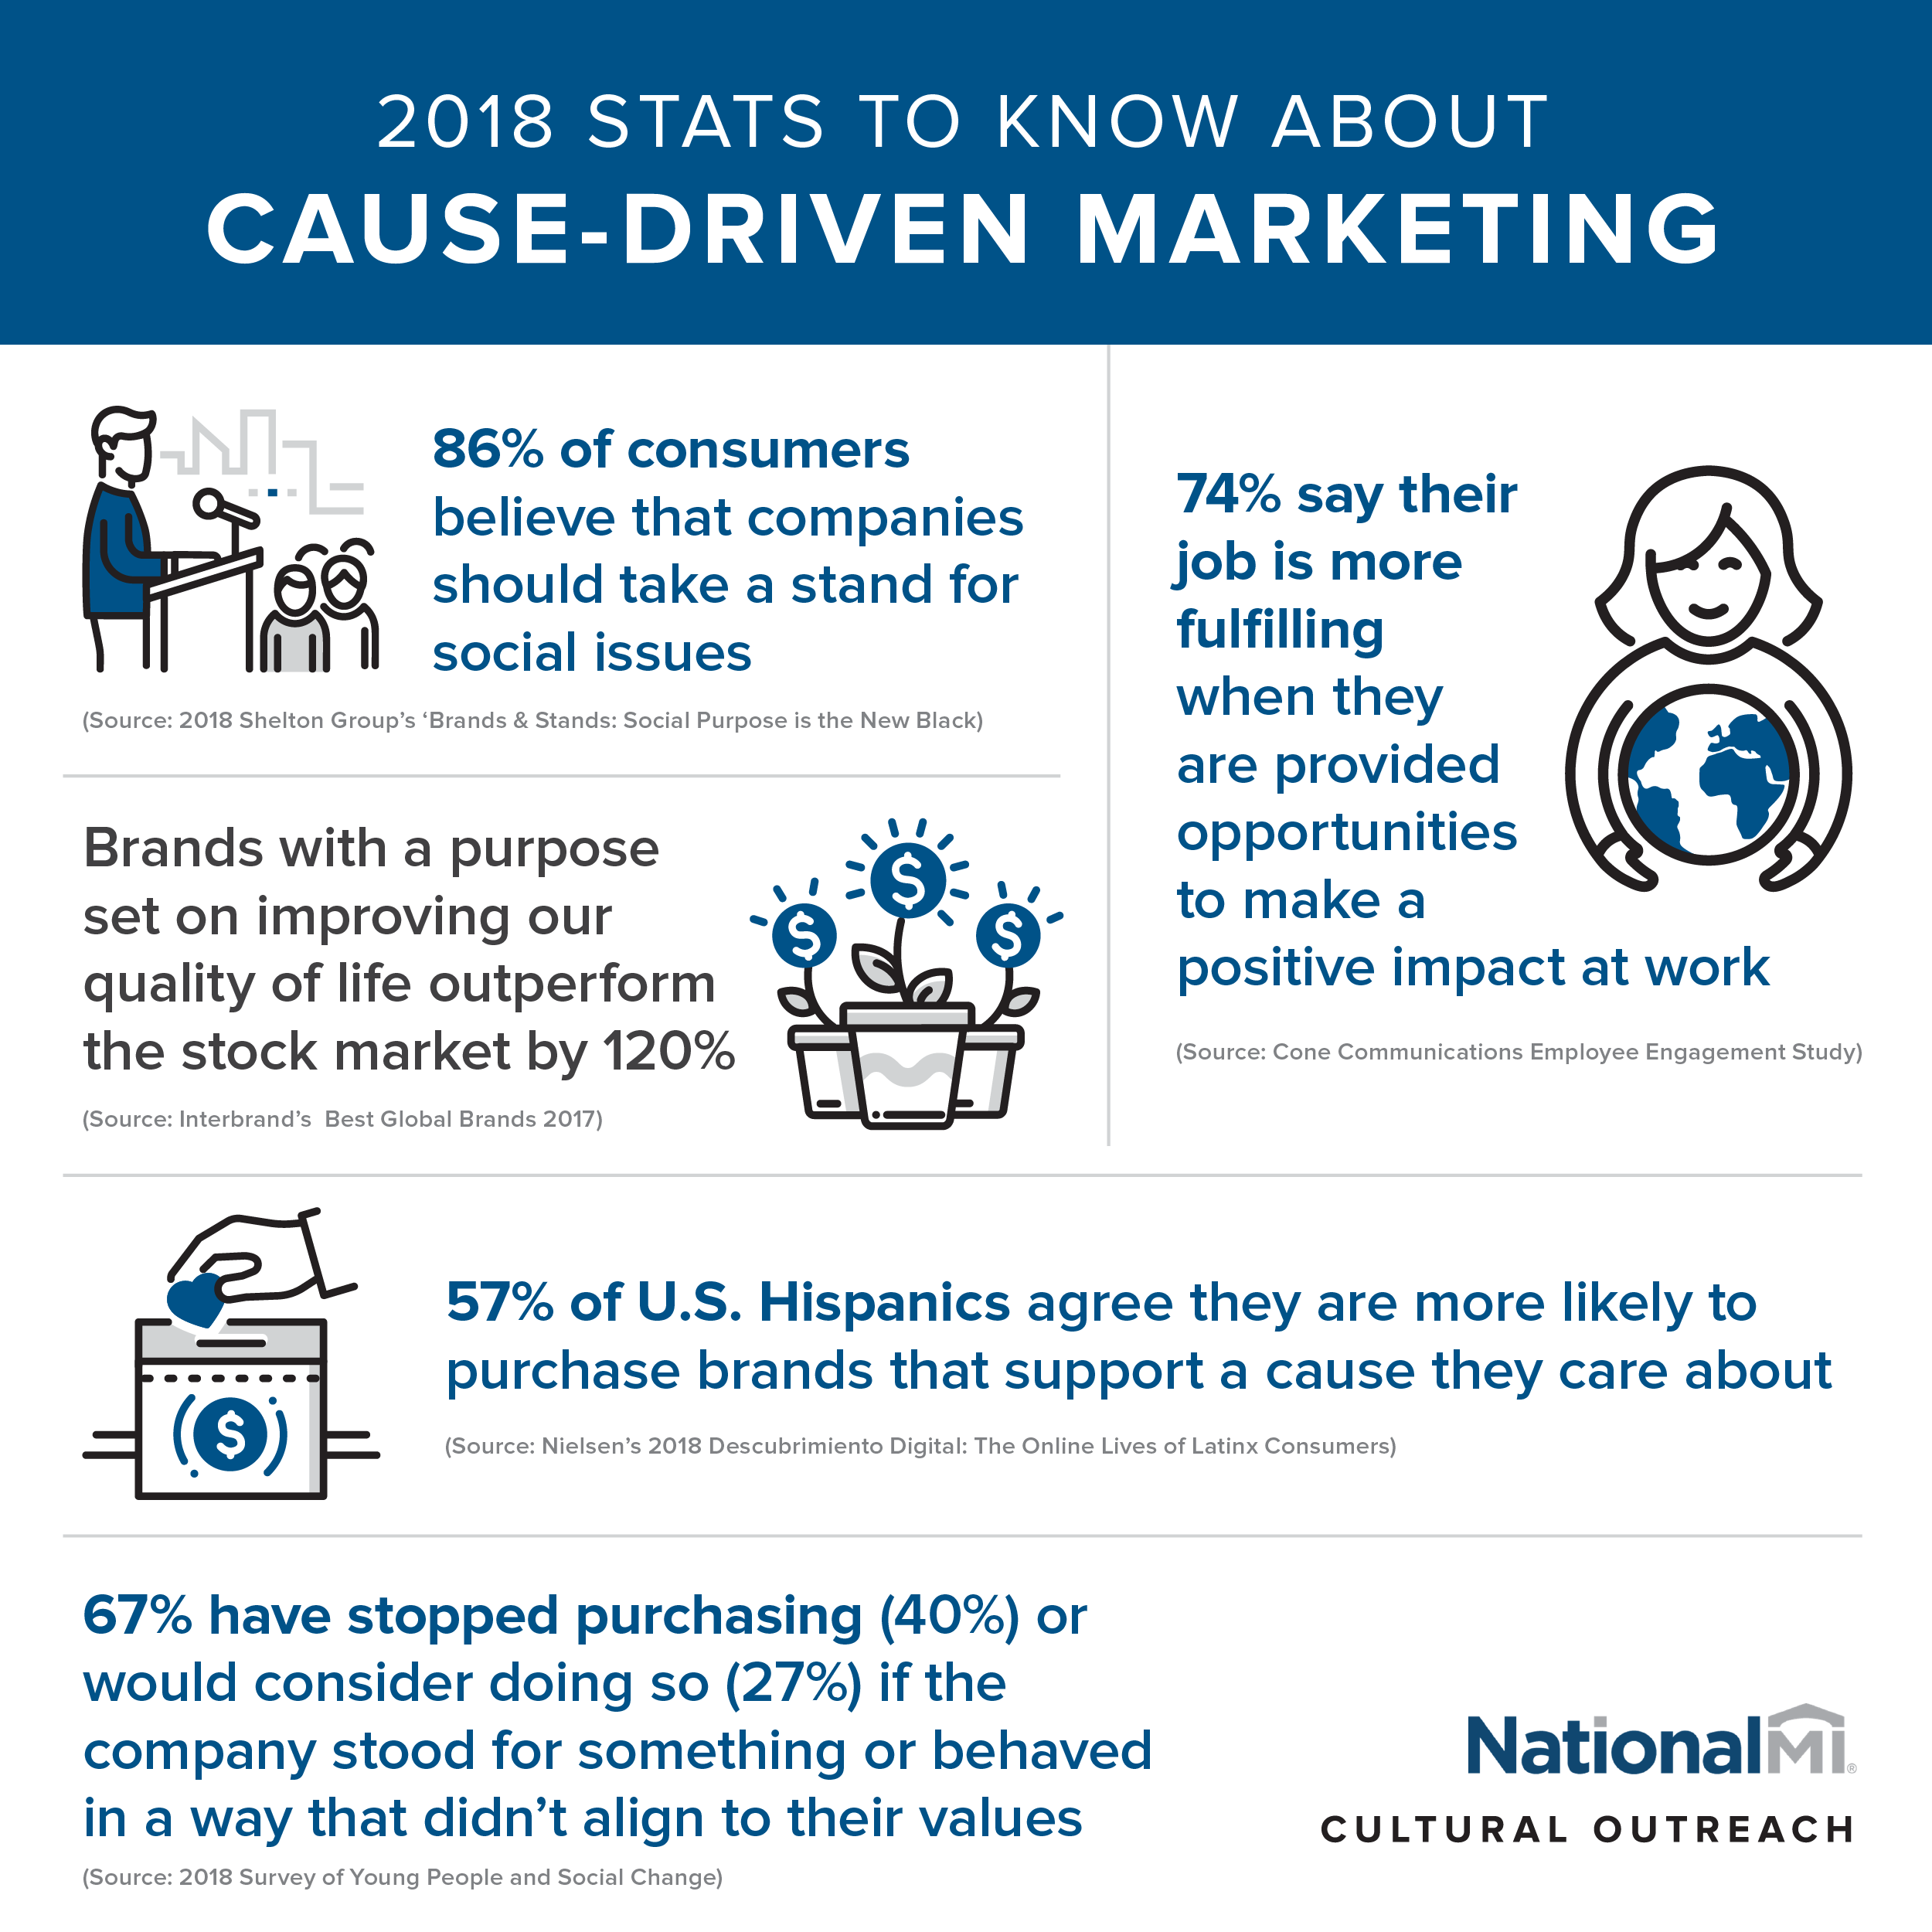 CauseMarketingStats_InfographicNMI.png